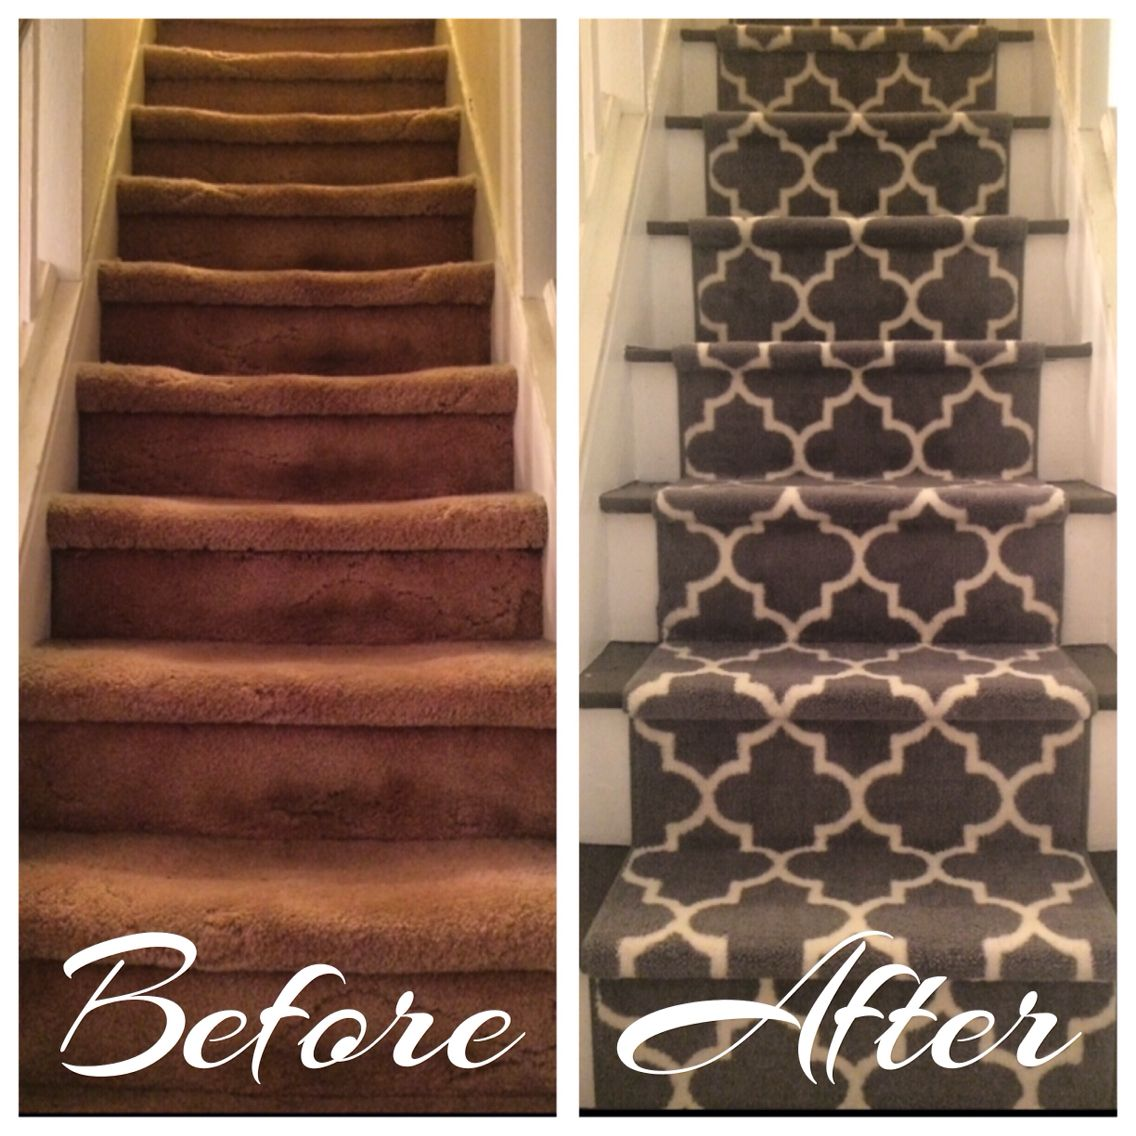 Before And After Diy Stairway Redesign So Easy Step 1 Remove